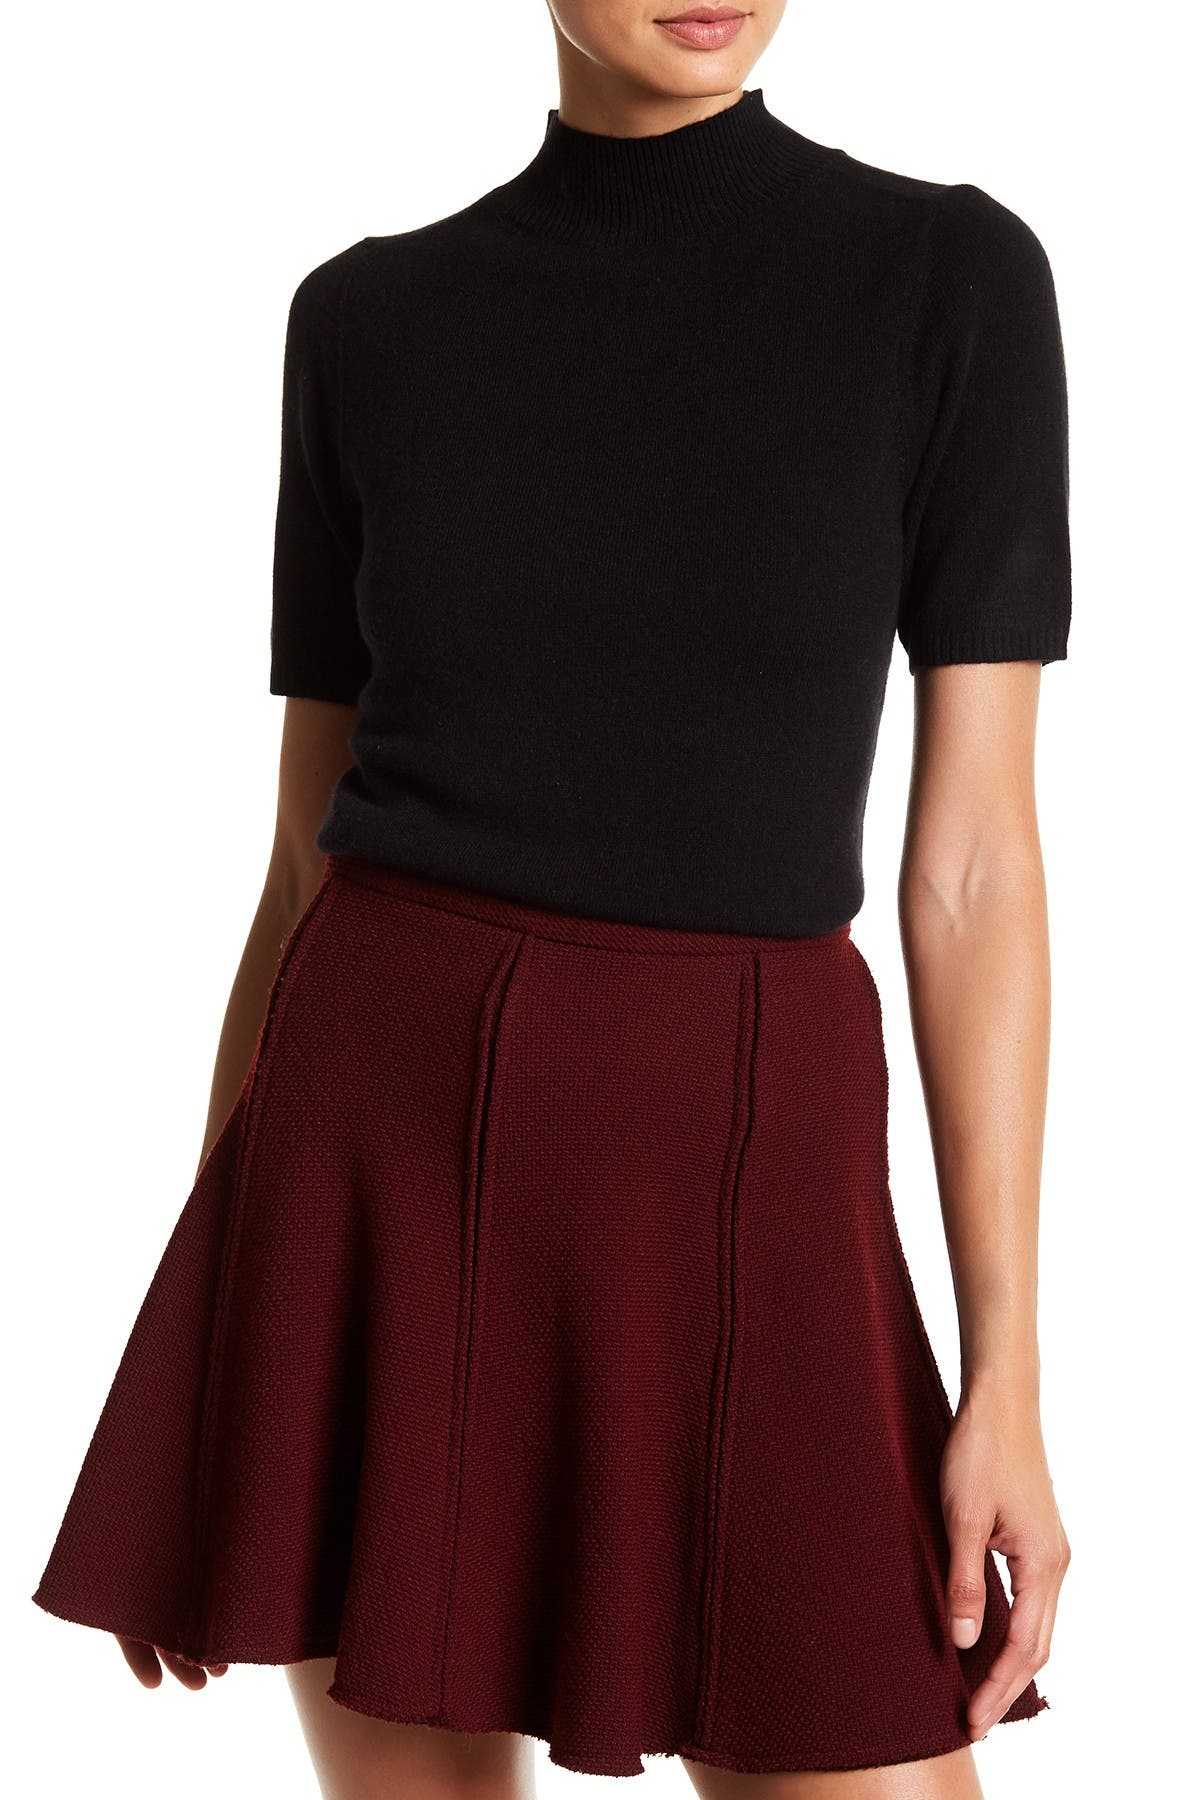 Image of In Cashmere Mock Neck Short Sleeve Cashmere Sweater